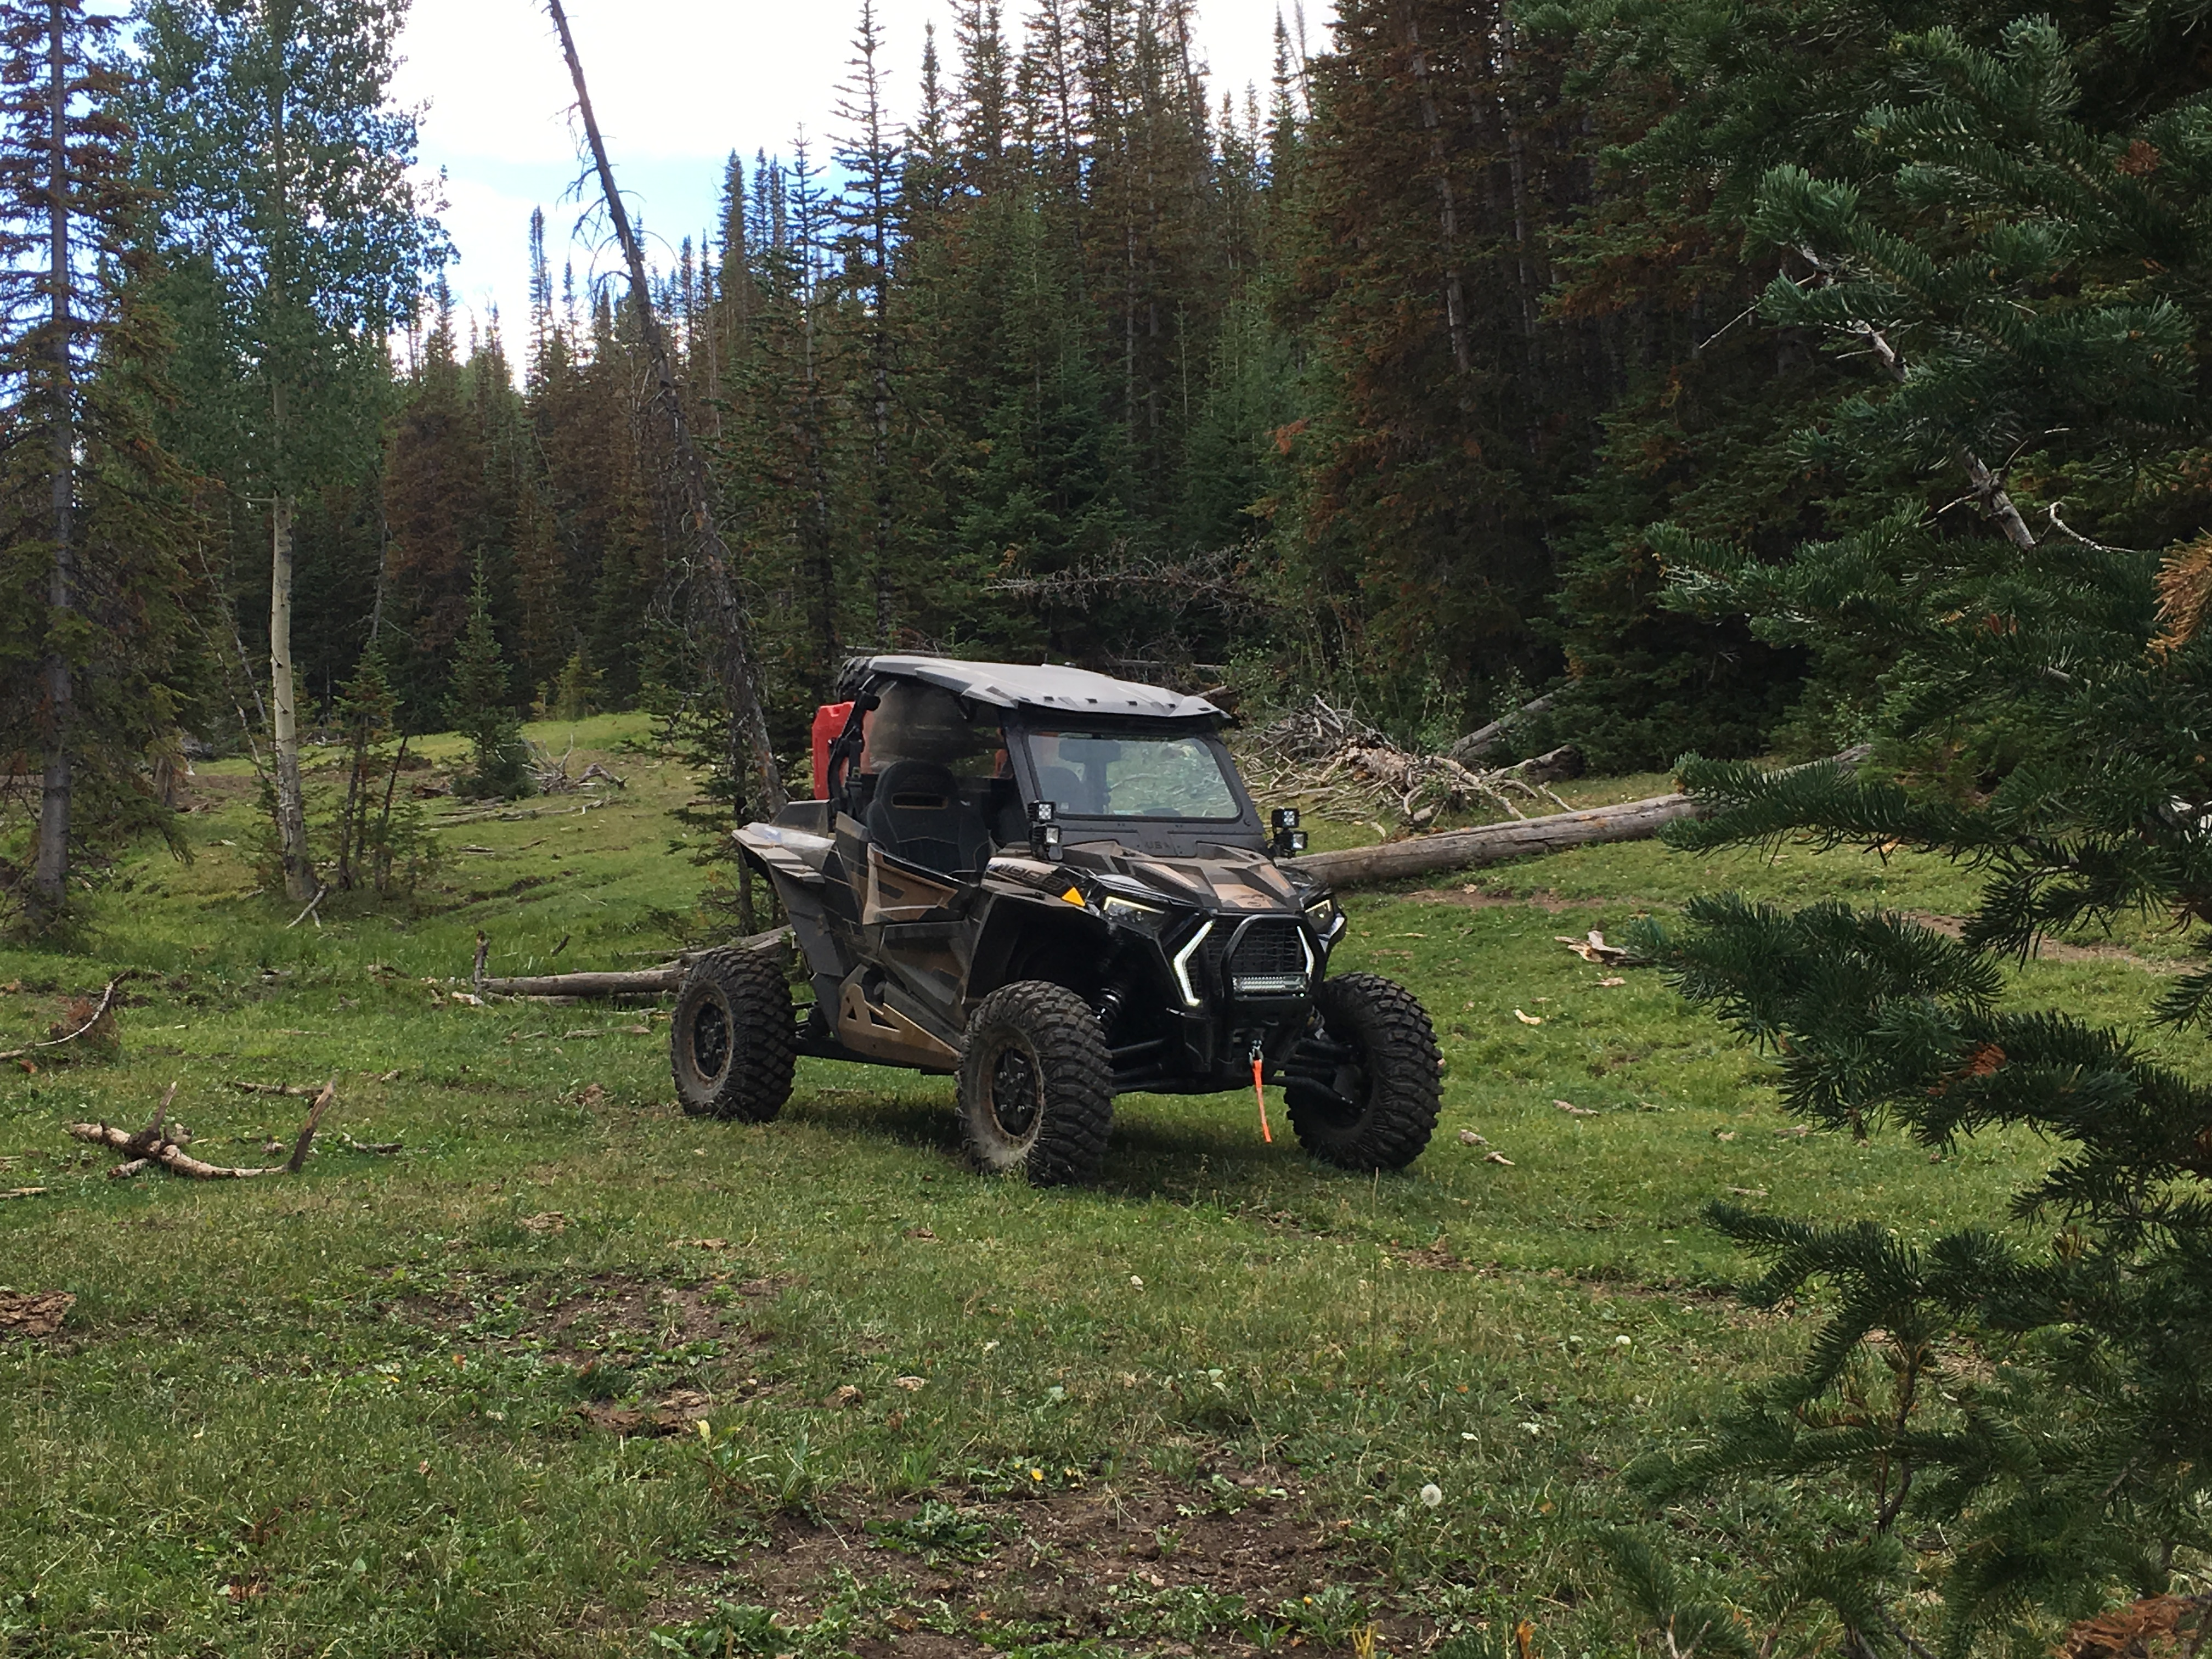 Click image for larger version  Name:RZR Litte Mountain Aug 2019.jpg Views:44 Size:3.49 MB ID:583948